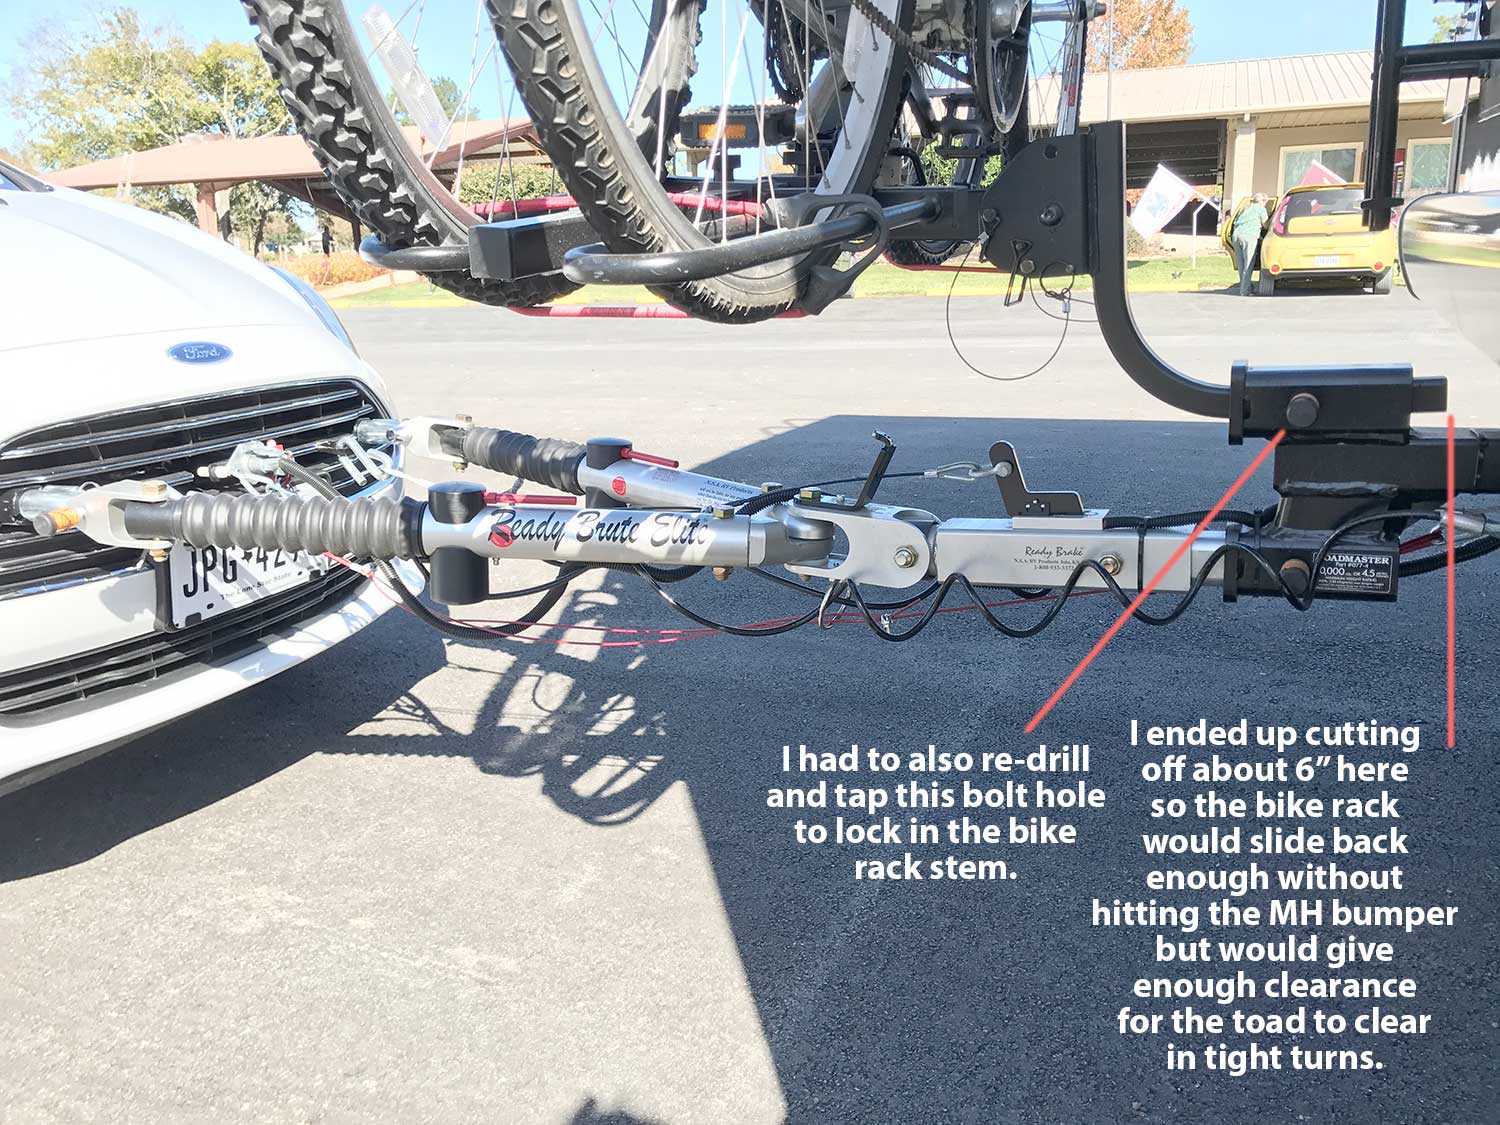 Click image for larger version  Name:bike-rack-modifications.jpg Views:33 Size:280.6 KB ID:238832